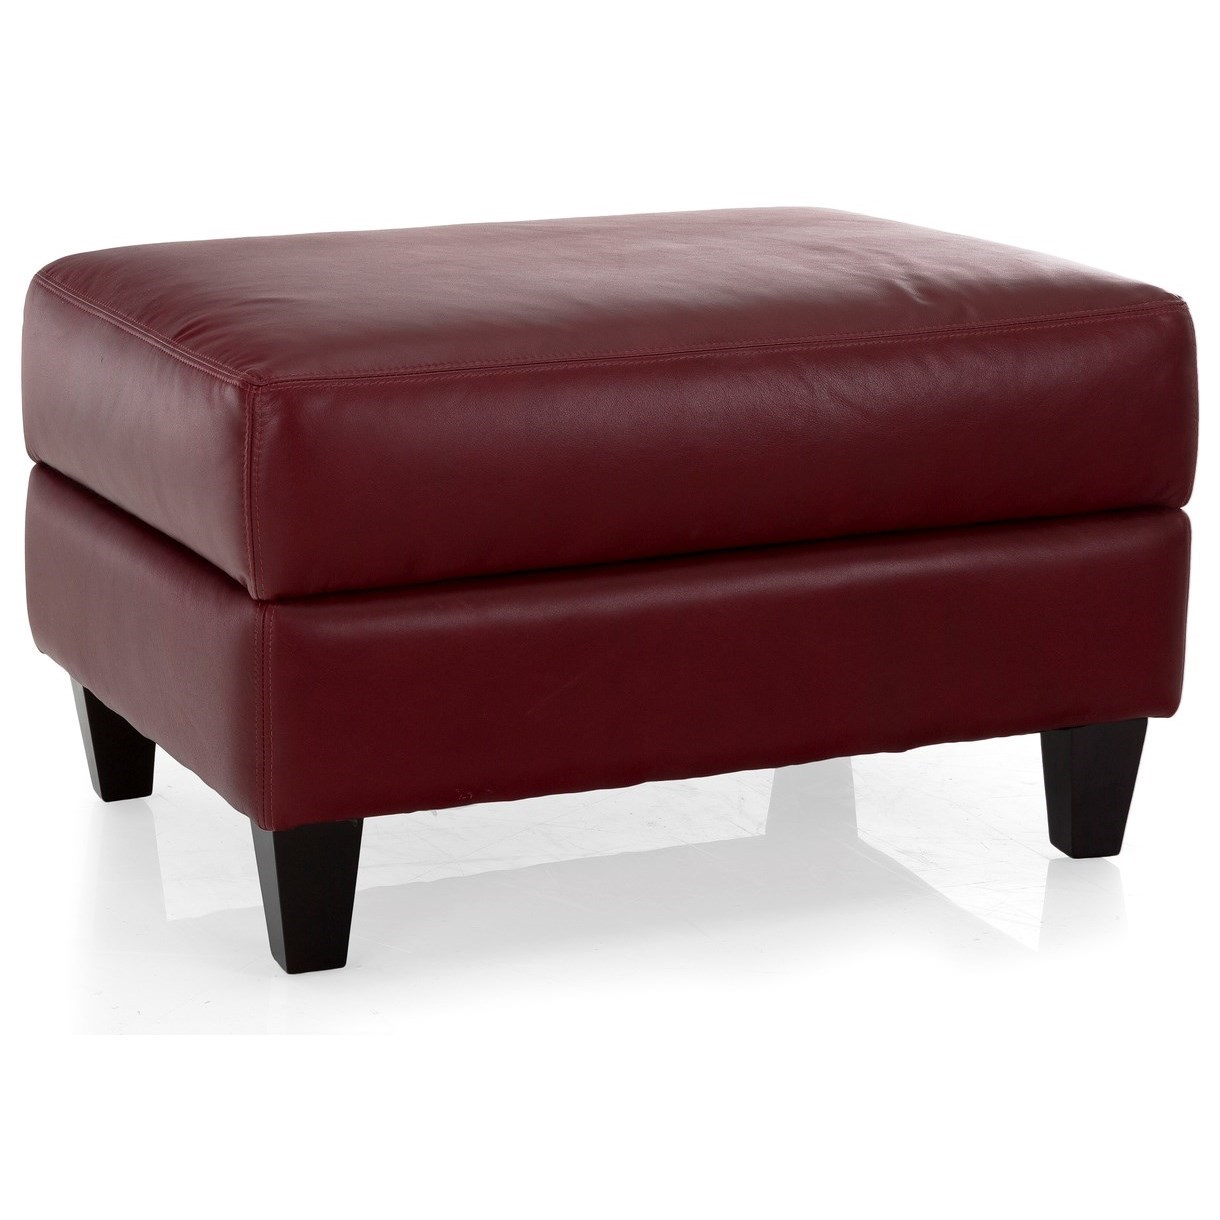 Alessandra Connections Storage Ottoman by Decor-Rest at Johnny Janosik